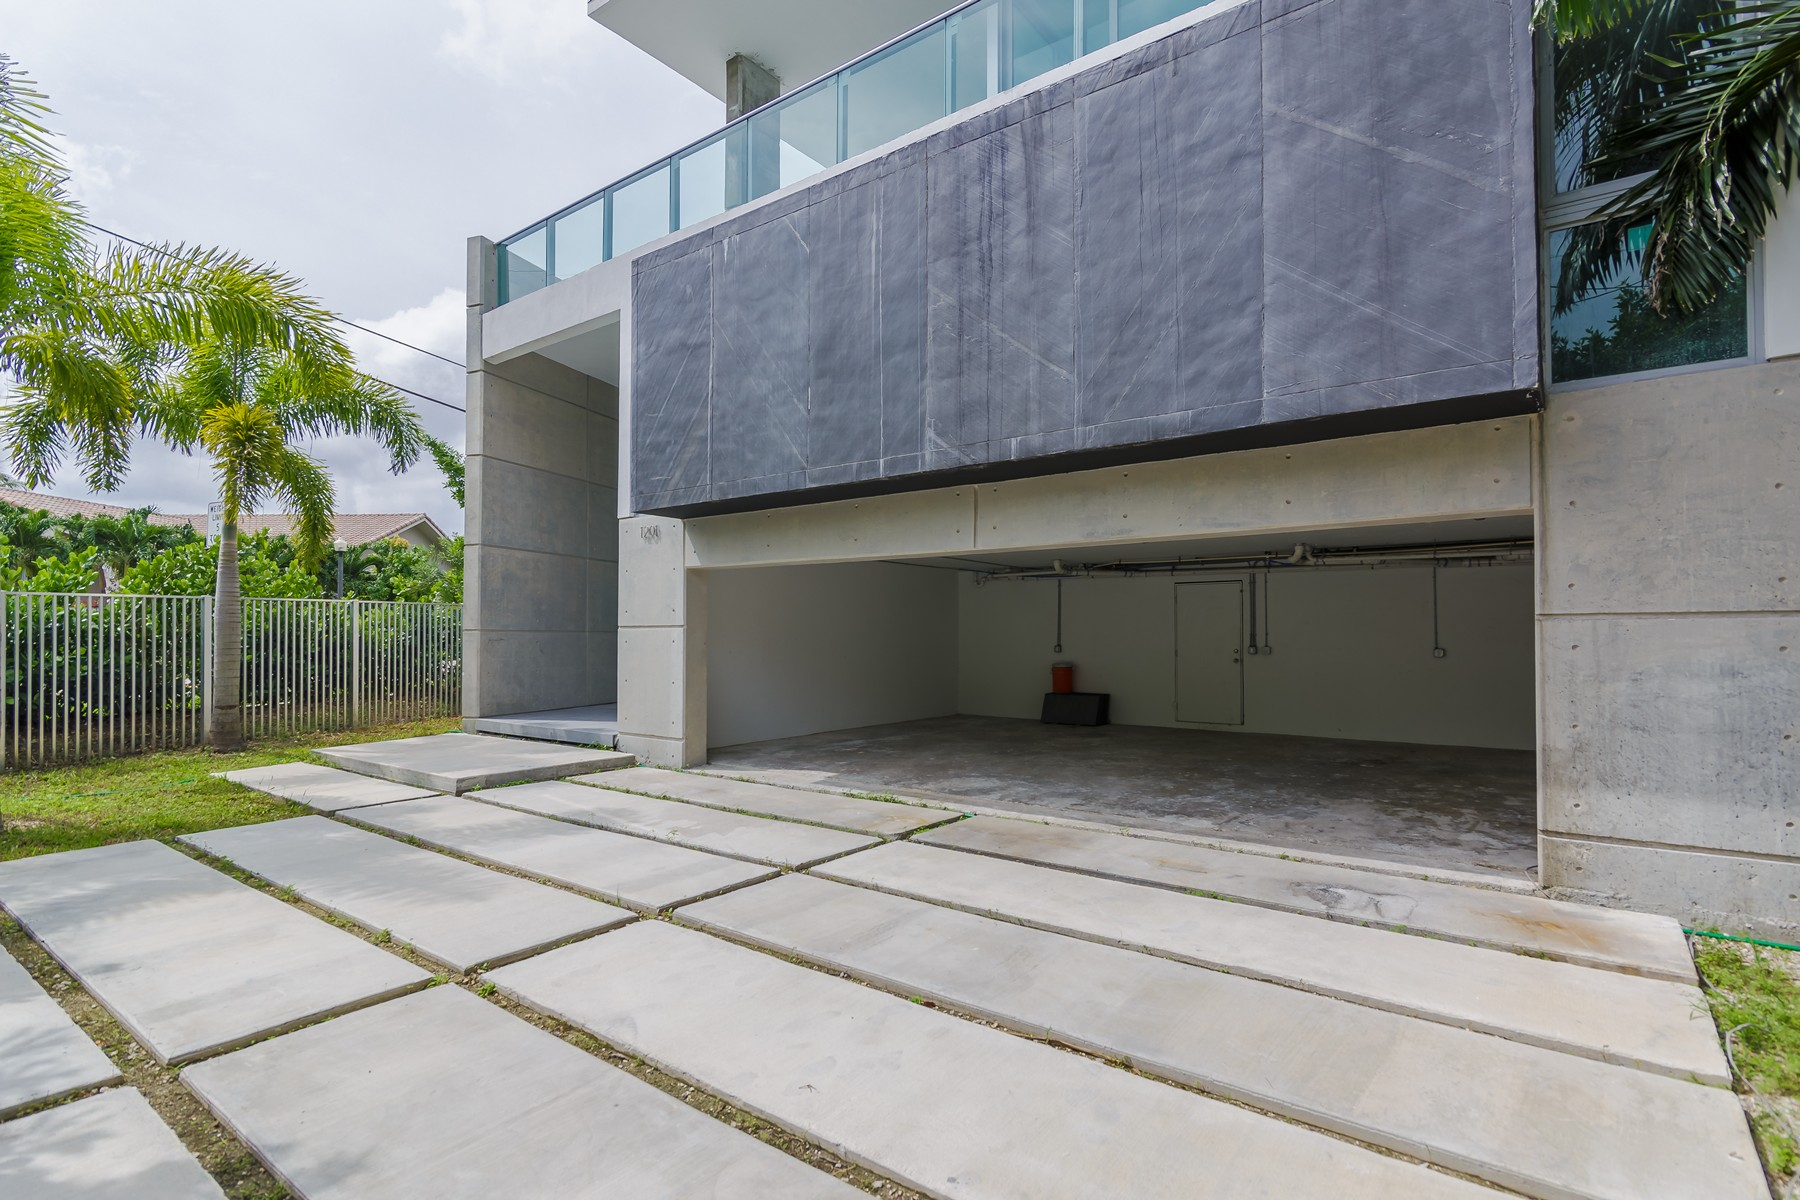 Single Family Home for Sale at 1201 N Venetian Way Miami Beach, Florida 33139 United States